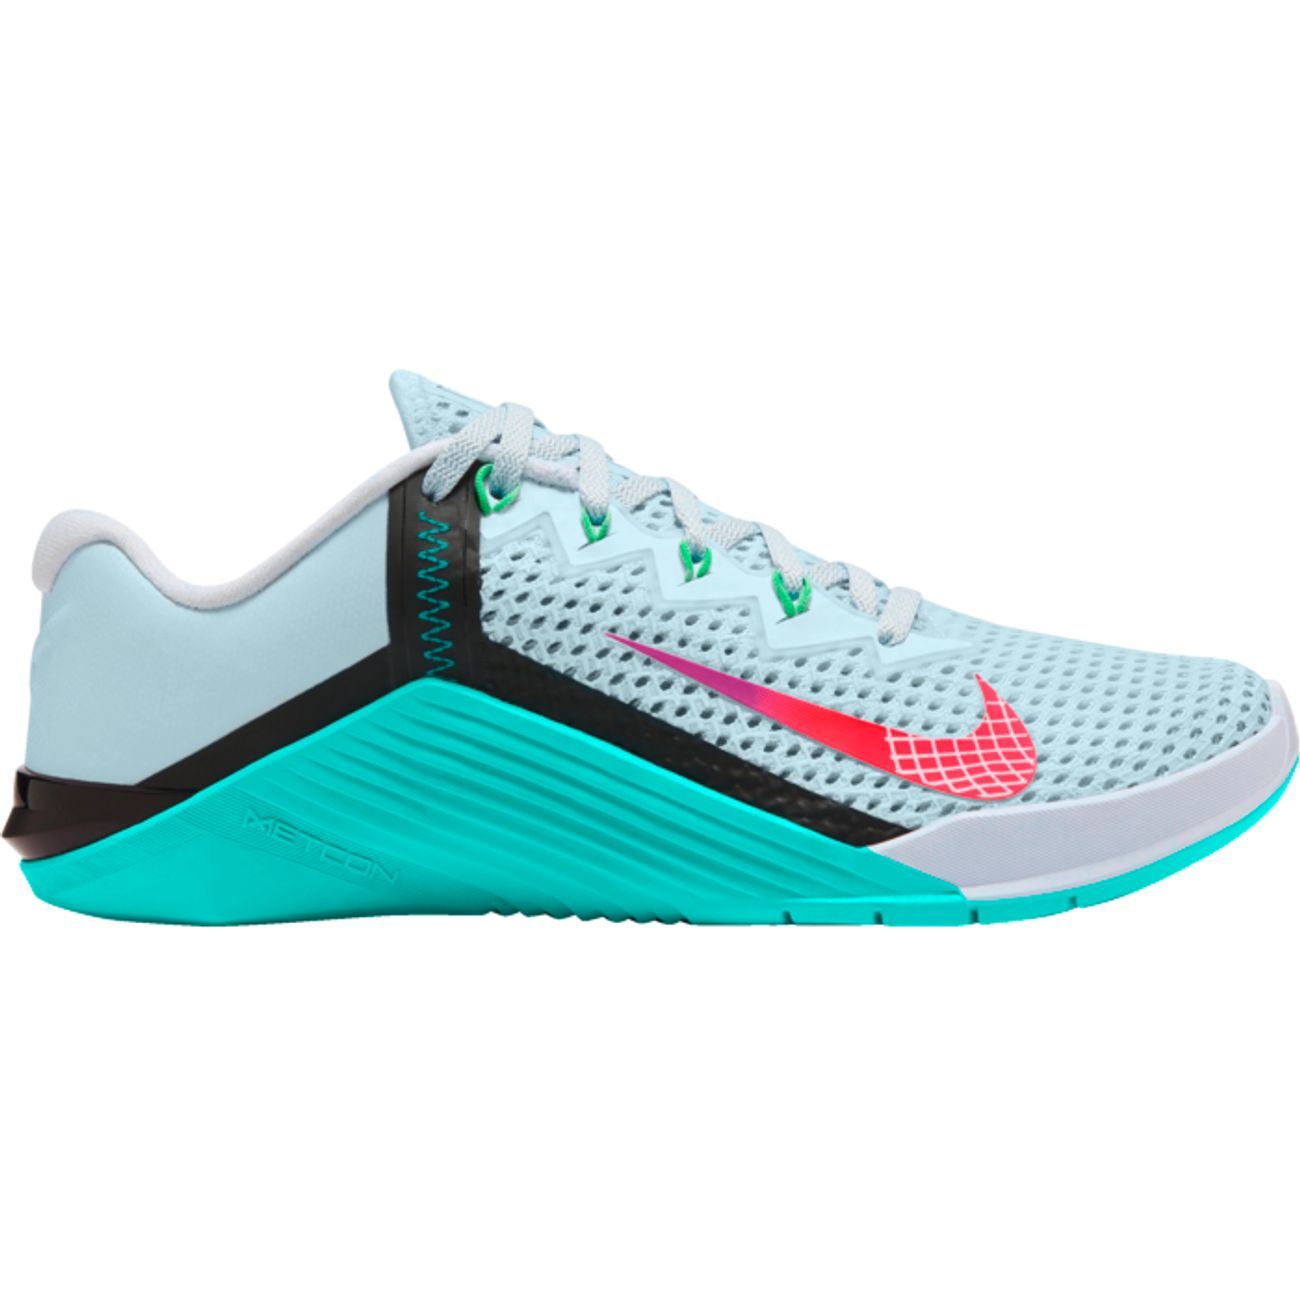 Chaussures Crossfit   NIKE METCON 6